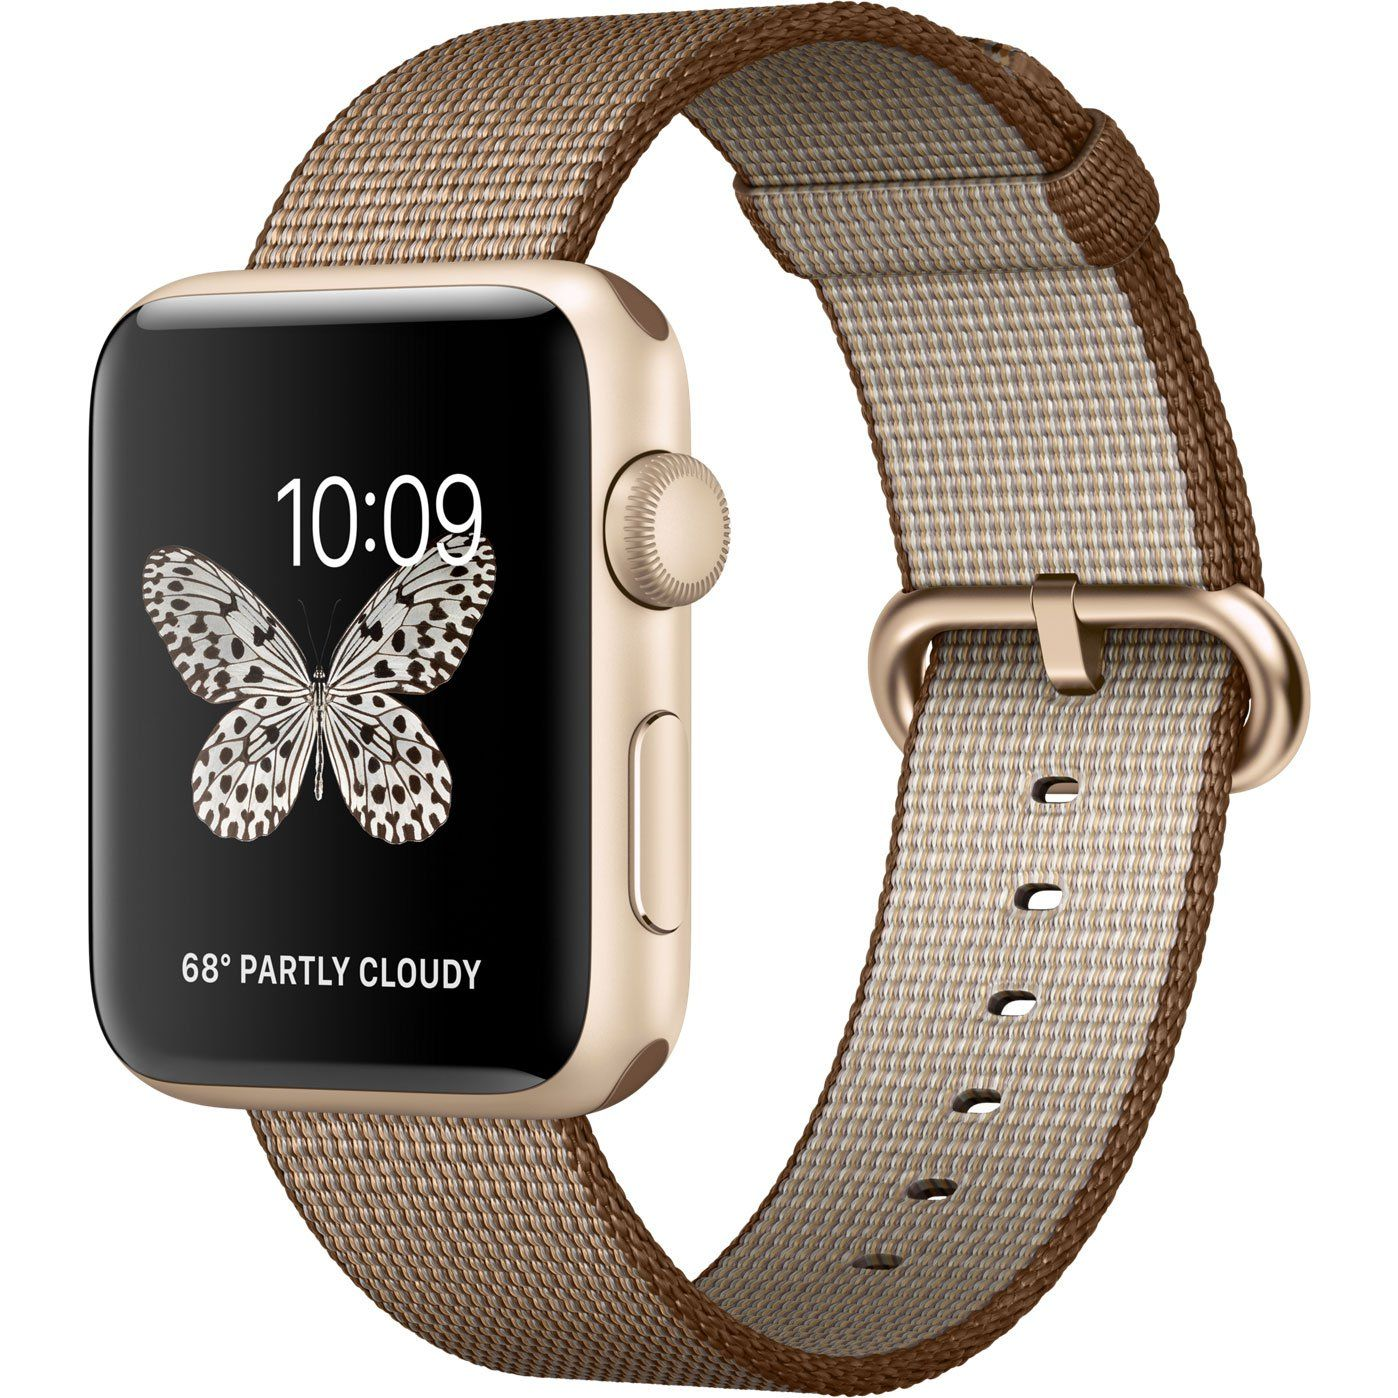 Apple Watch 42mm Toasted Coffe/Caramel Woven Nylon (MNKE2ZM/A), картинка 2